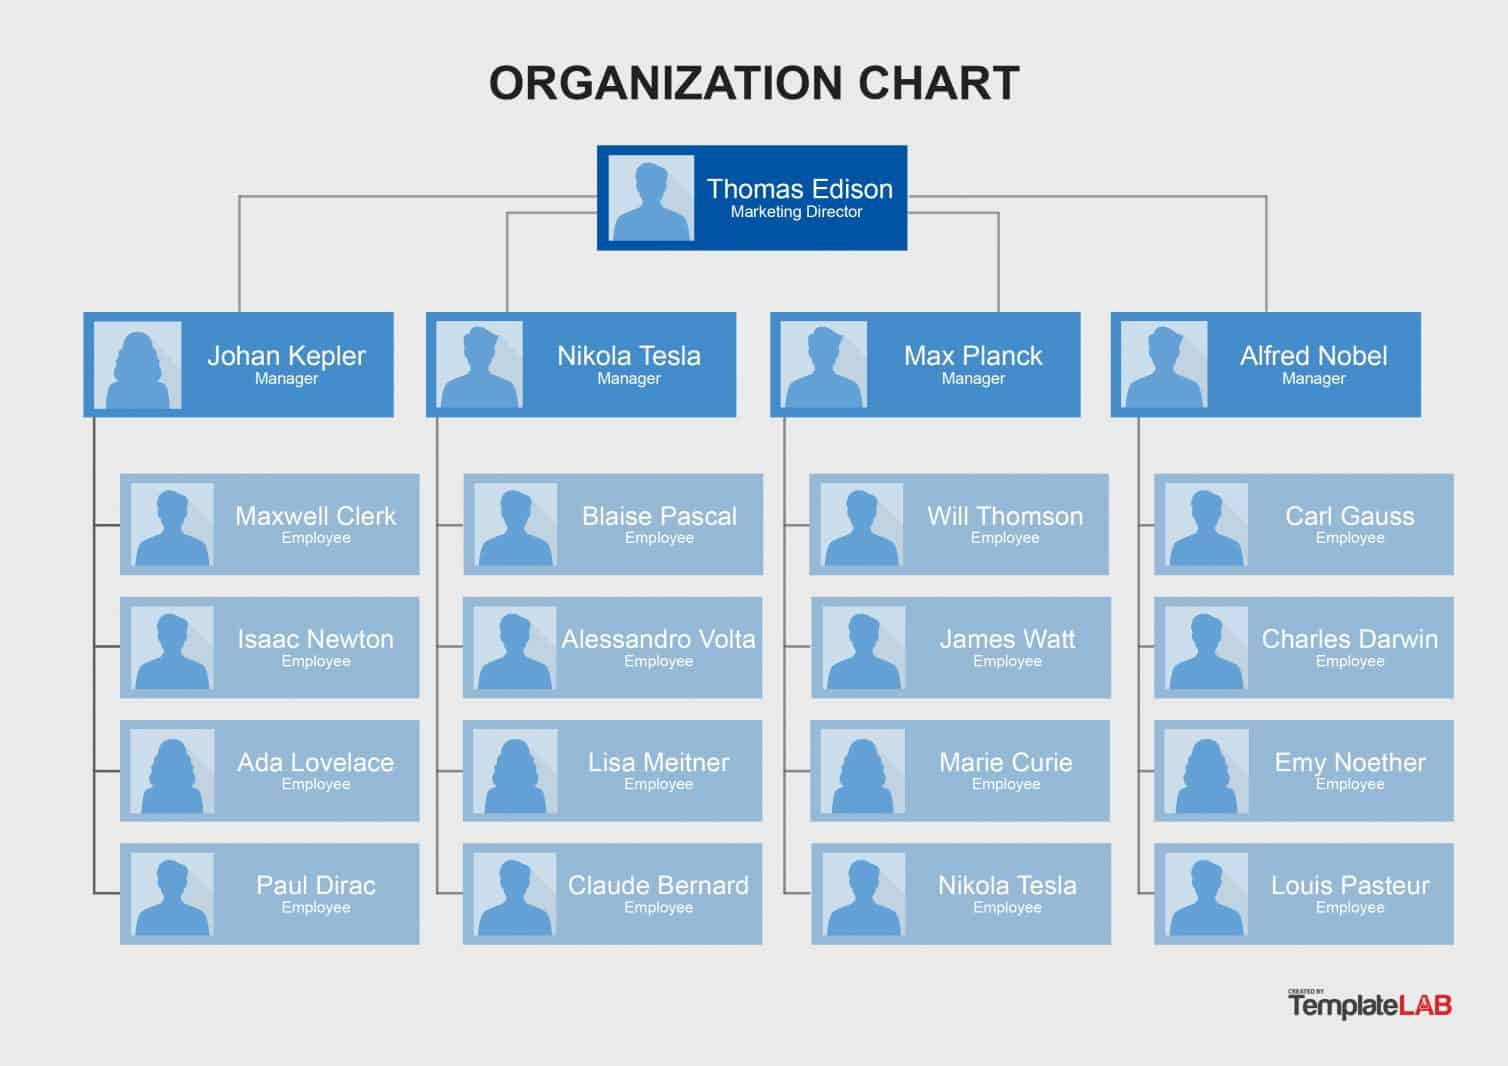 007 Imposing Hierarchy Organizational Chart Template Word Design  Hierarchical Organization -Full